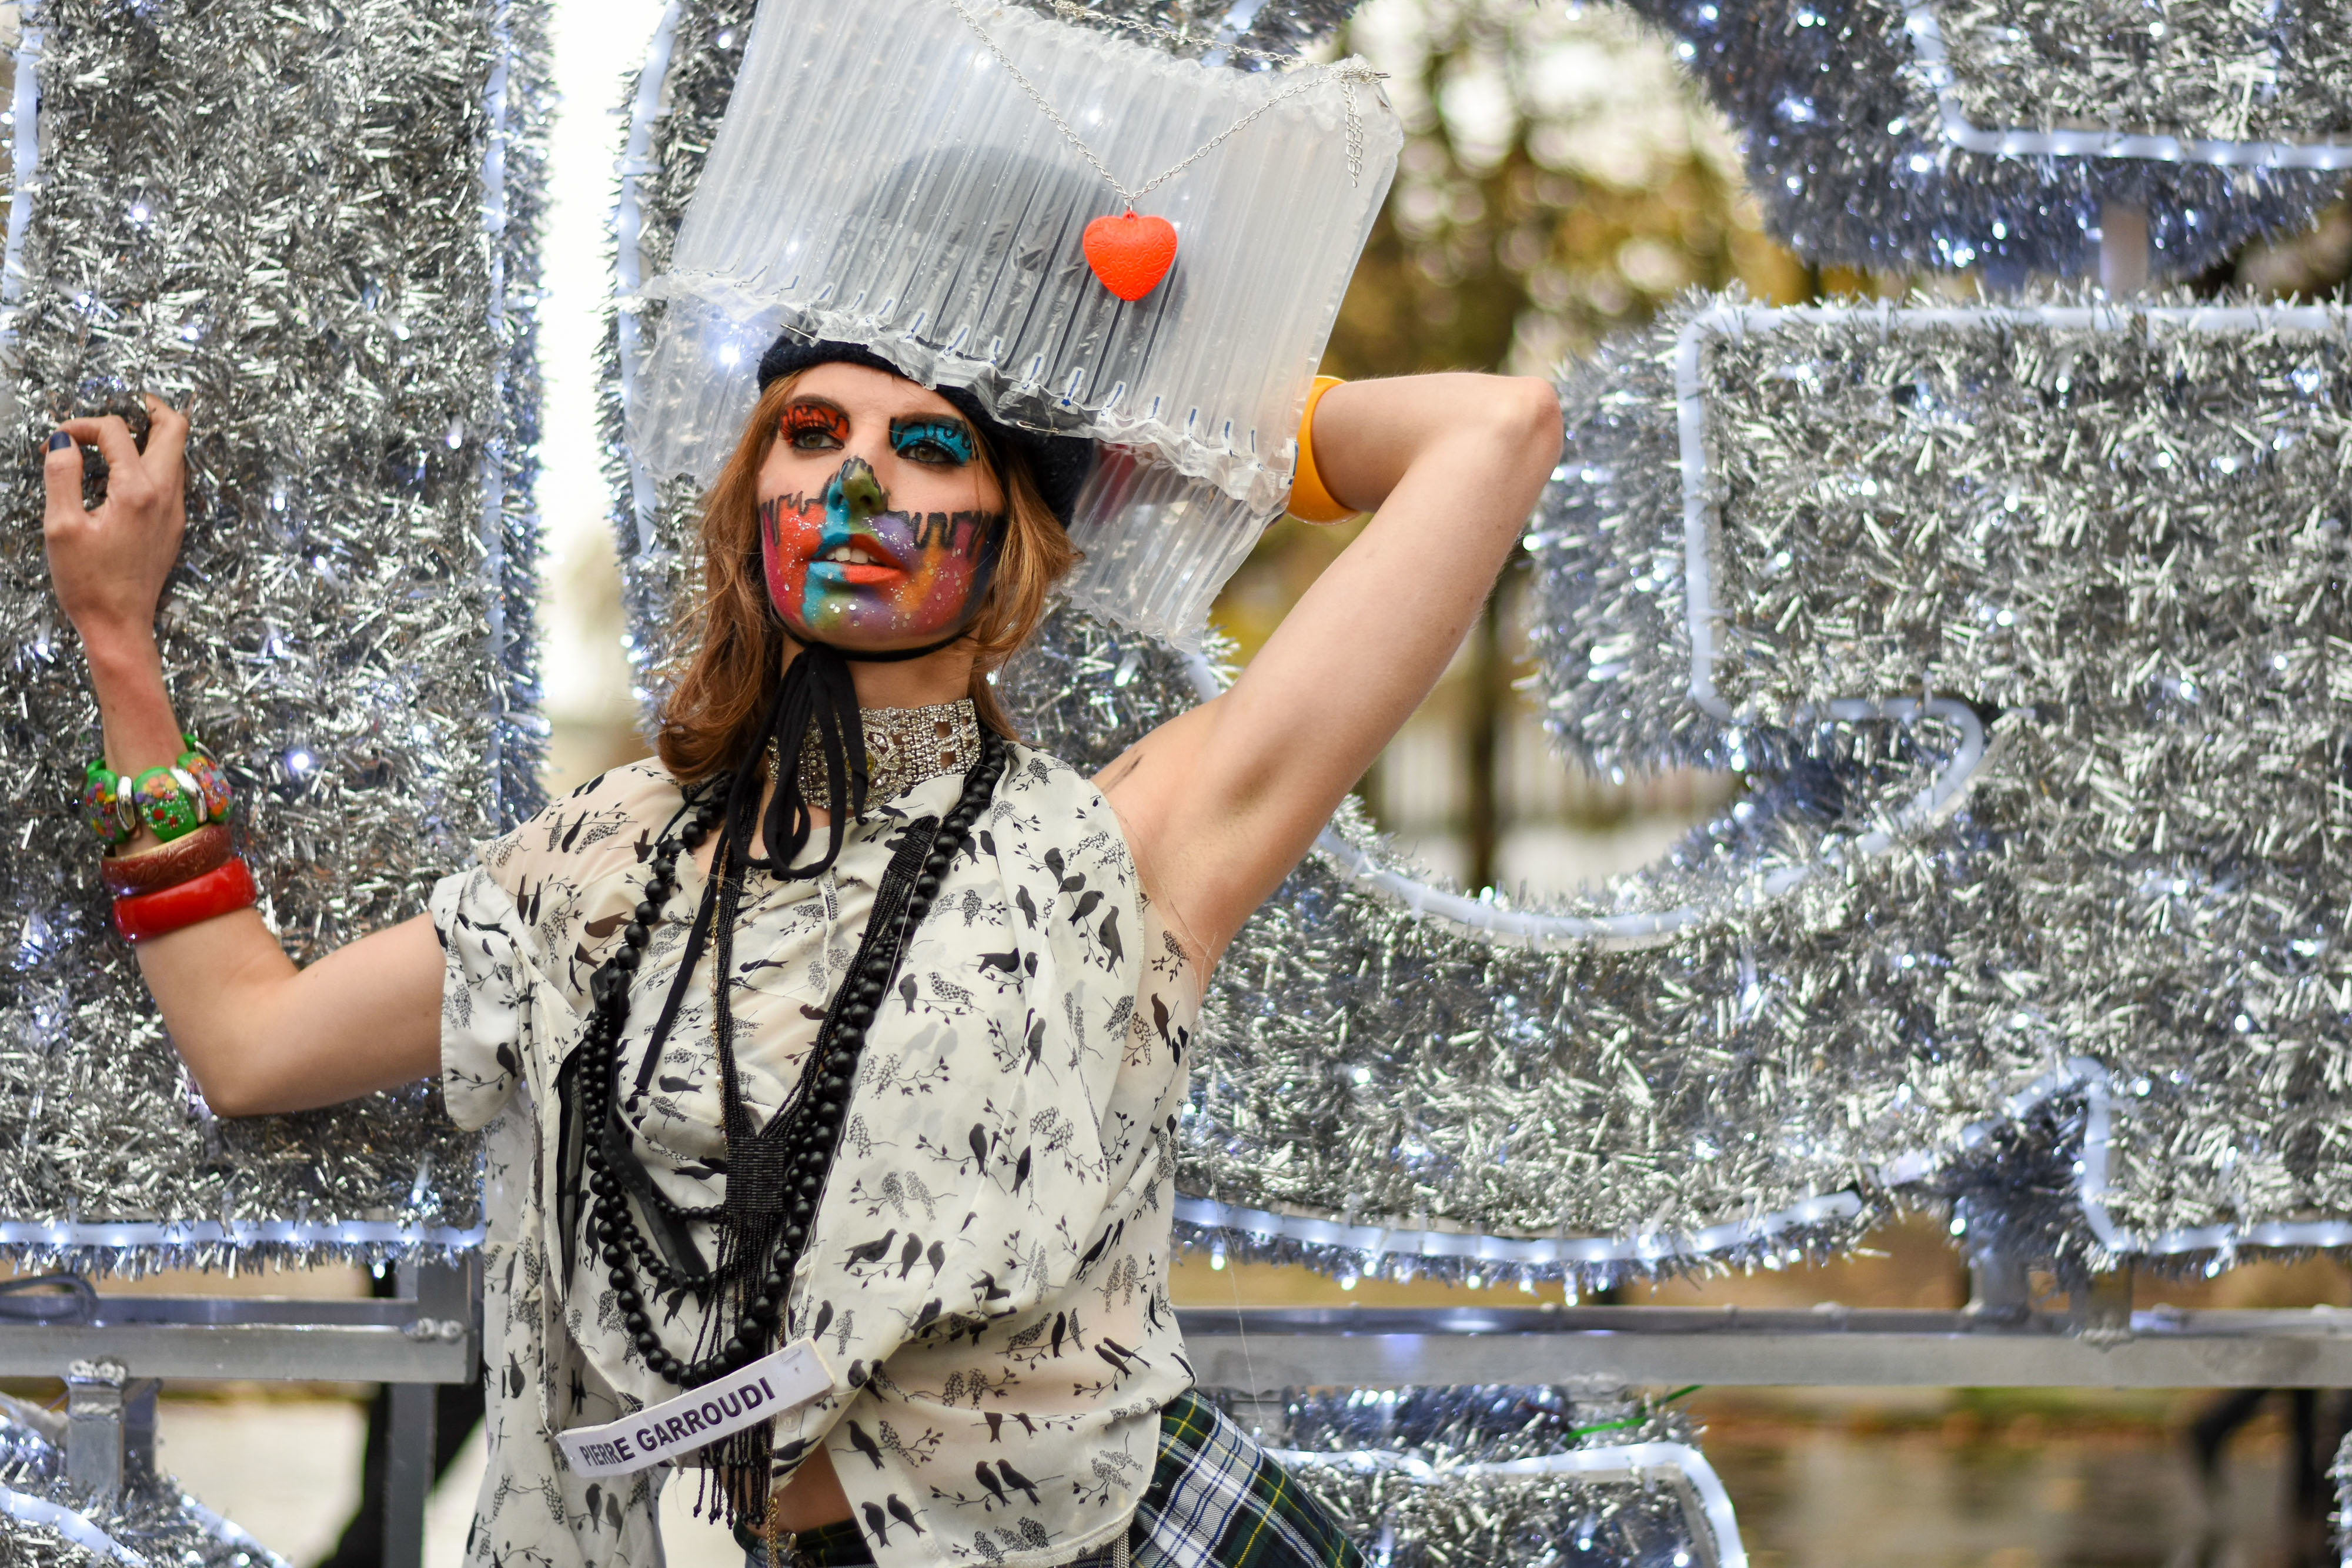 A model showcases Pierre Garroudi latest collection during the flash mob fashion show at Sloane Square. (Photo by Pietro Recchia / SOPA Images/Sipa USA)